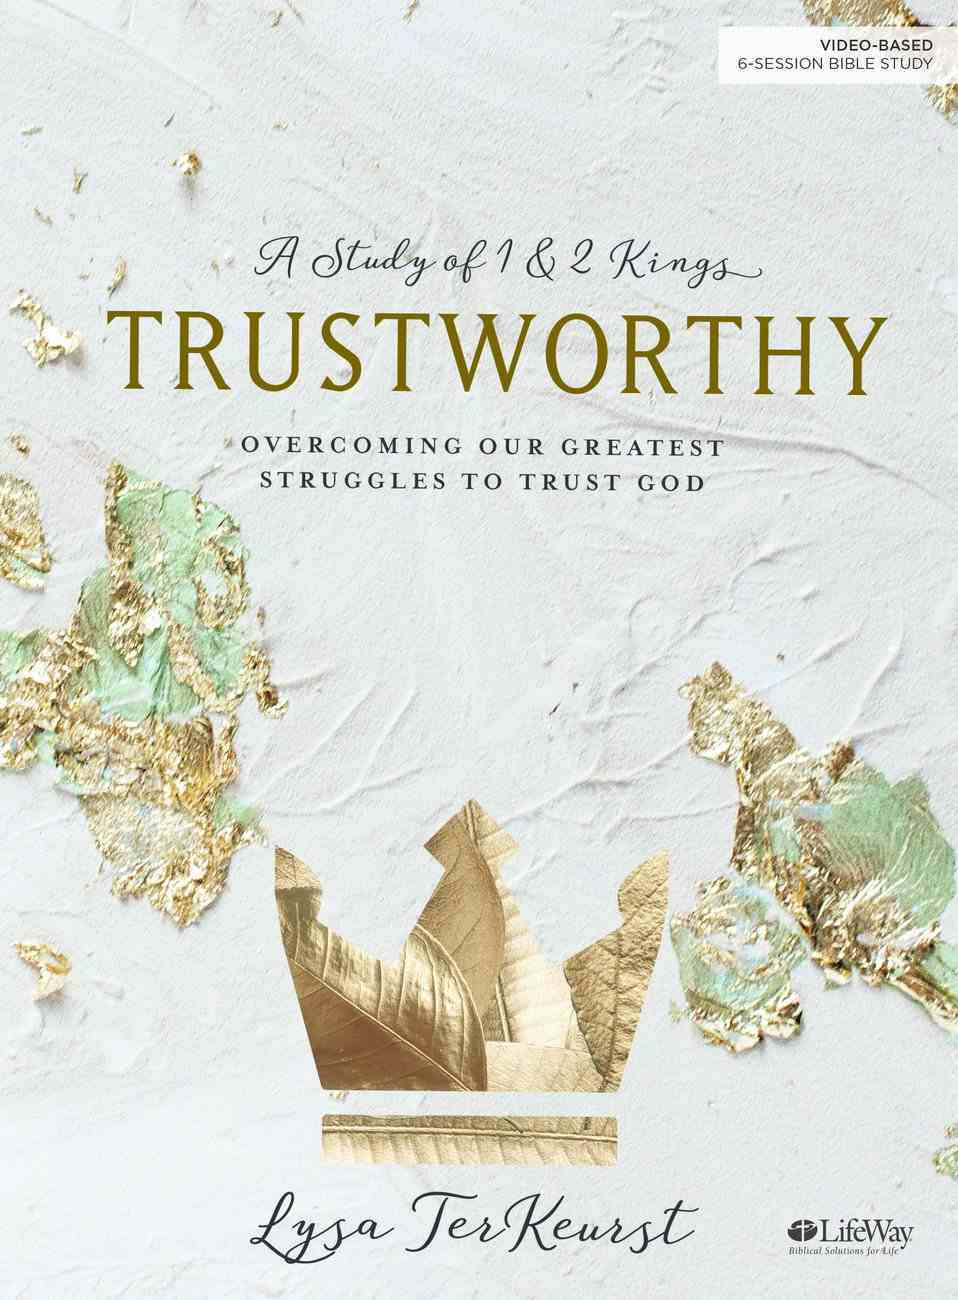 Trustworthy: Overcoming Our Greatest Struggles to Trust God (6 Sessions) (Bible Study Book) Paperback